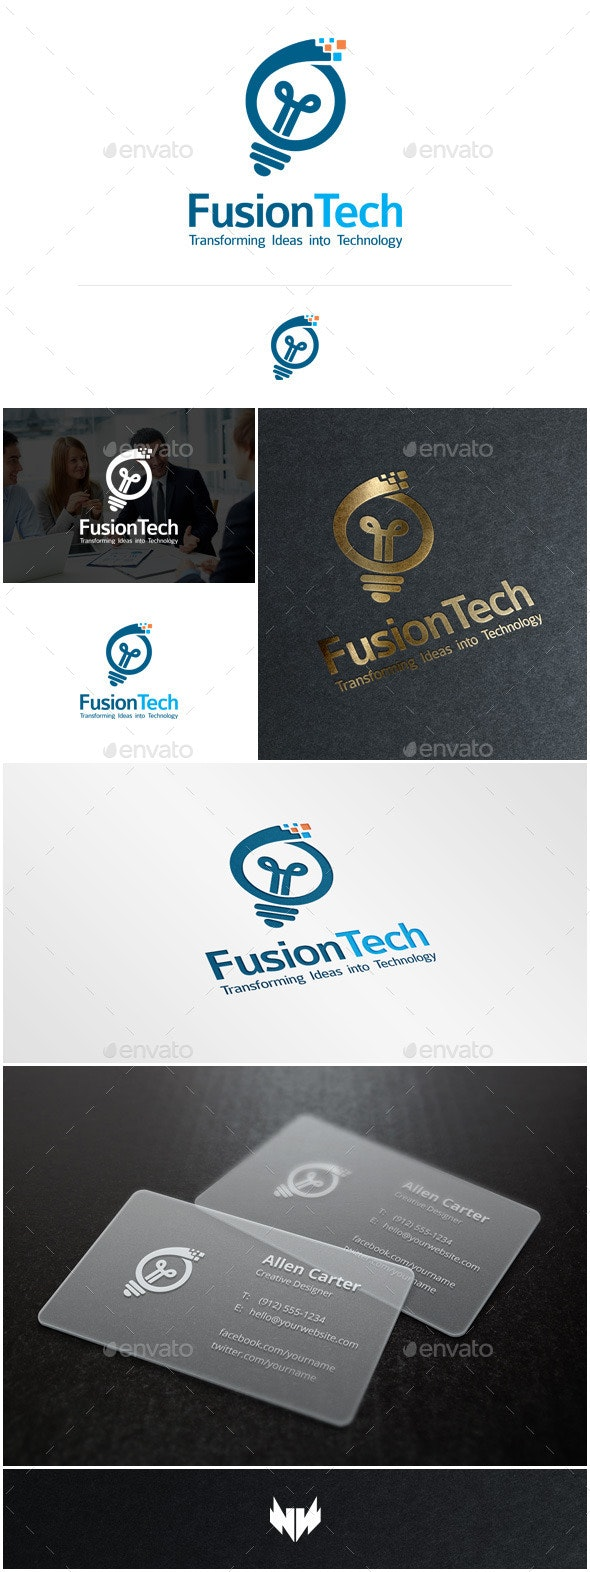 FusionTech Logo Template - Objects Logo Templates